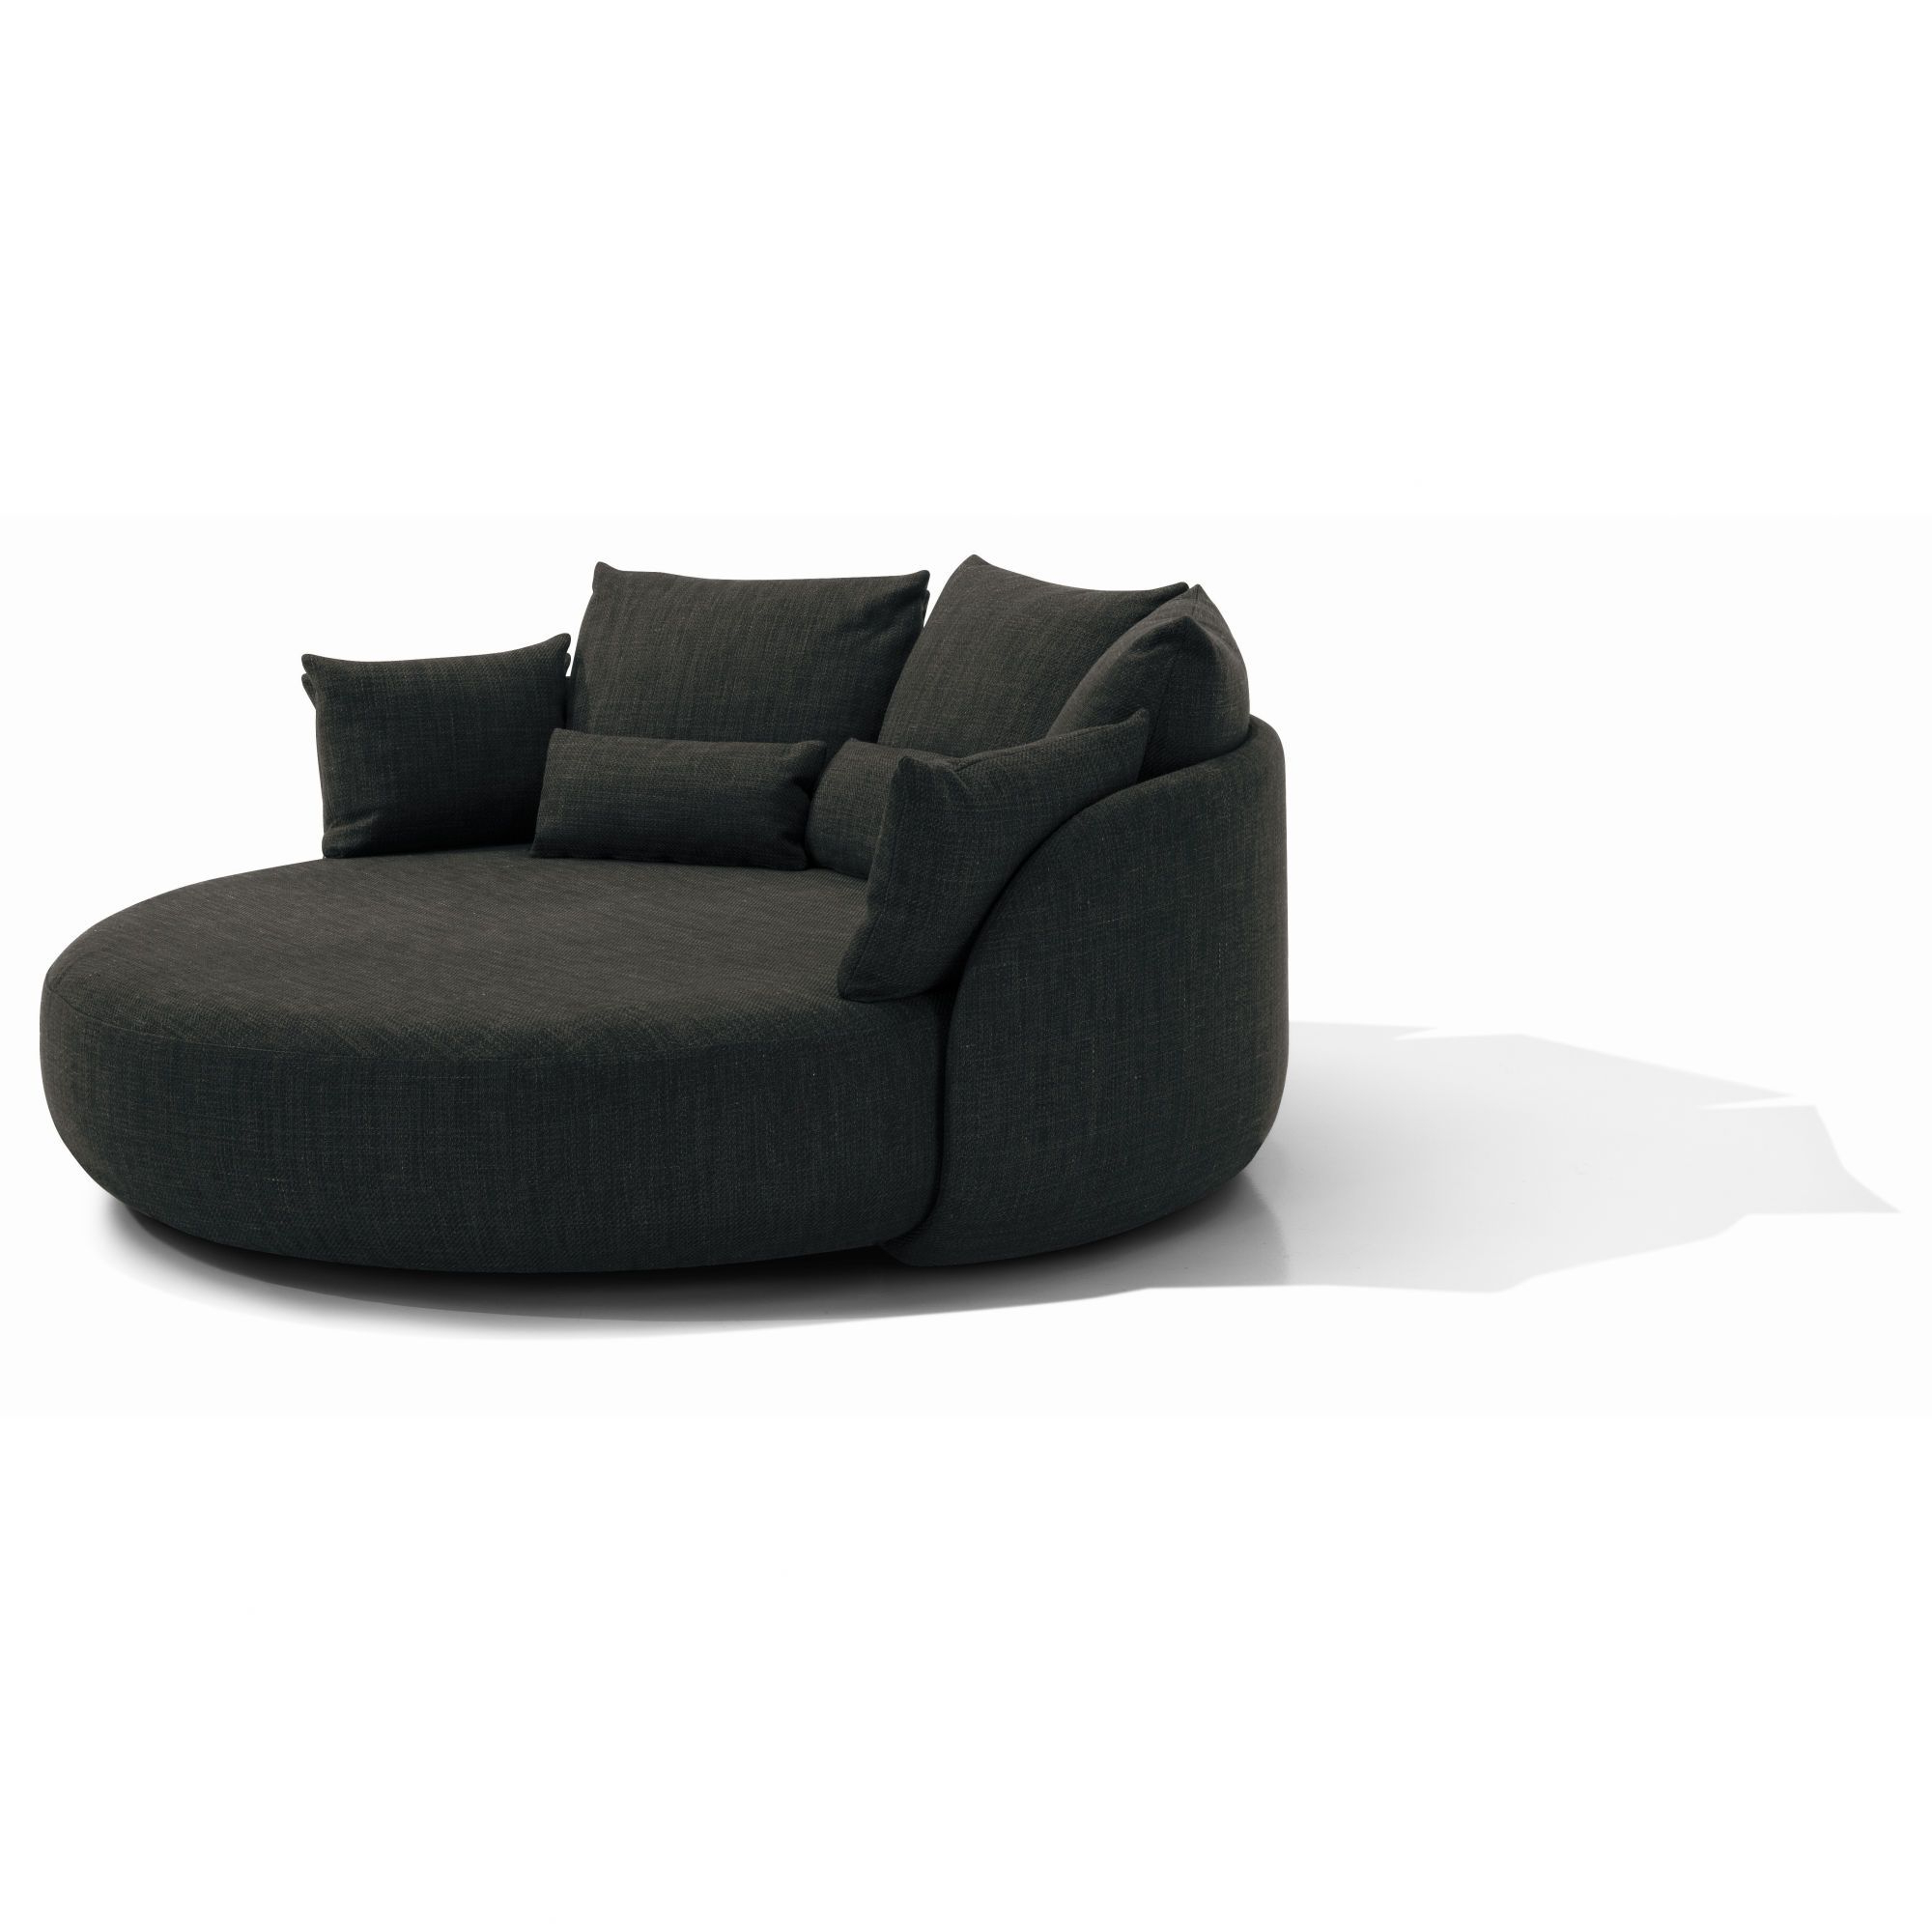 "Widely Used Totally Impractical Sofa For Our Small Space At 81"" Round – Is It Regarding Circle Sofa Chairs (Gallery 4 of 20)"